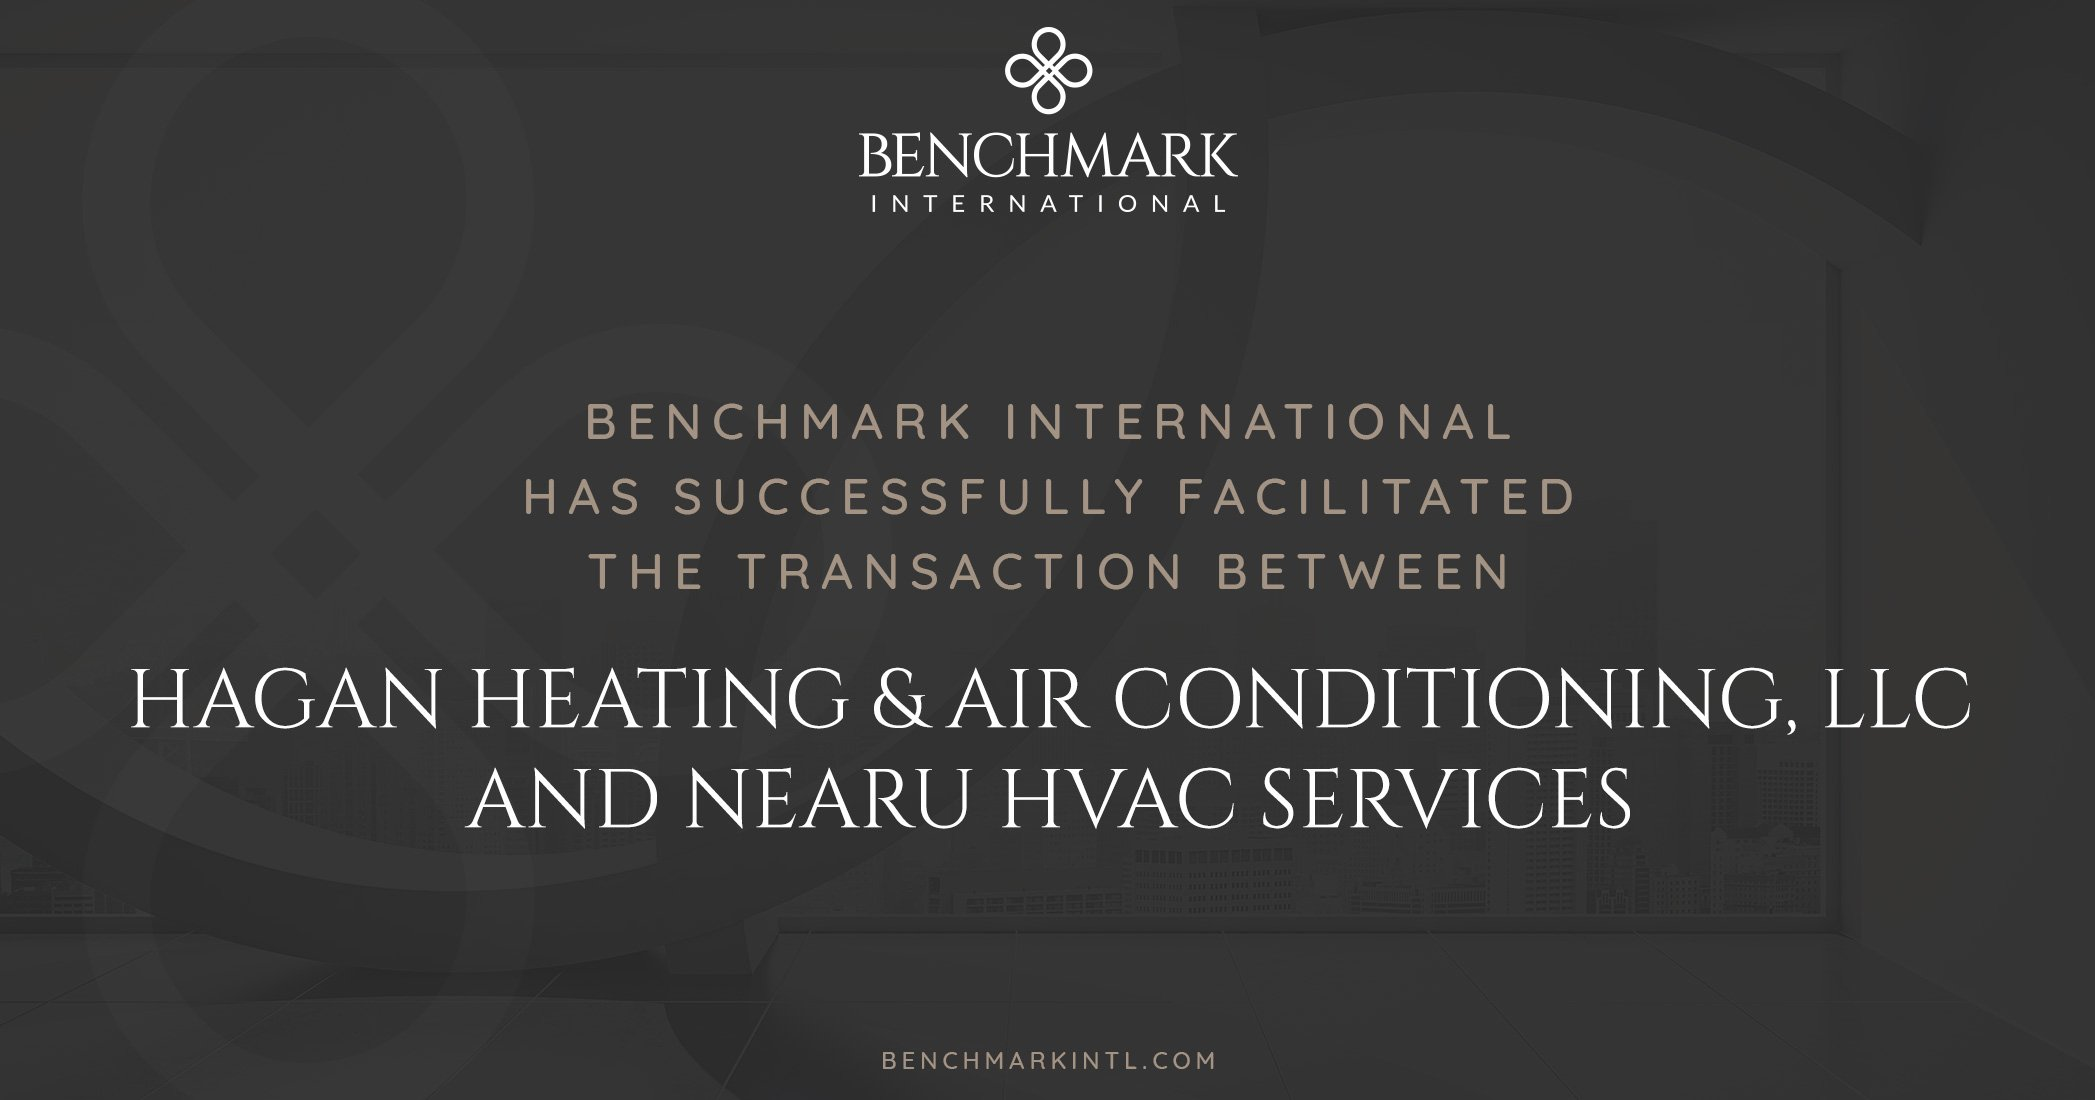 Benchmark International Successfully Facilitated the Transaction Between Hagan Heating & Air Conditioning, LLC and NearU HVAC Services